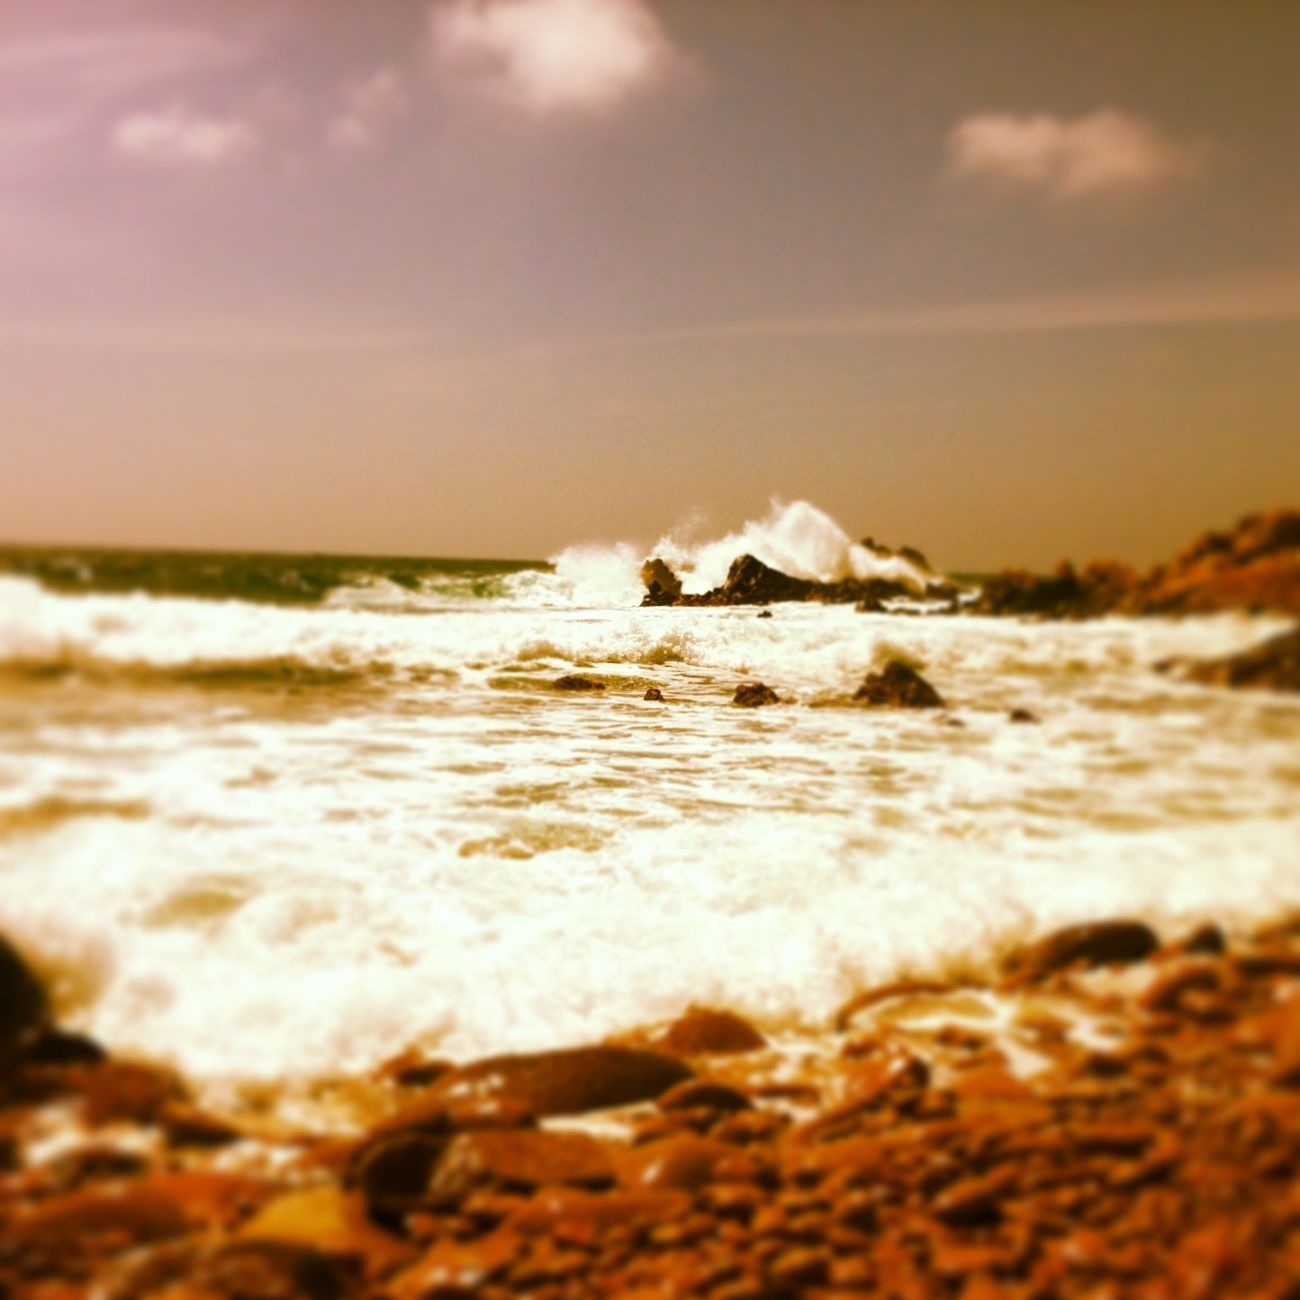 #sea #waves #ajaccio #corsica #waves #wind